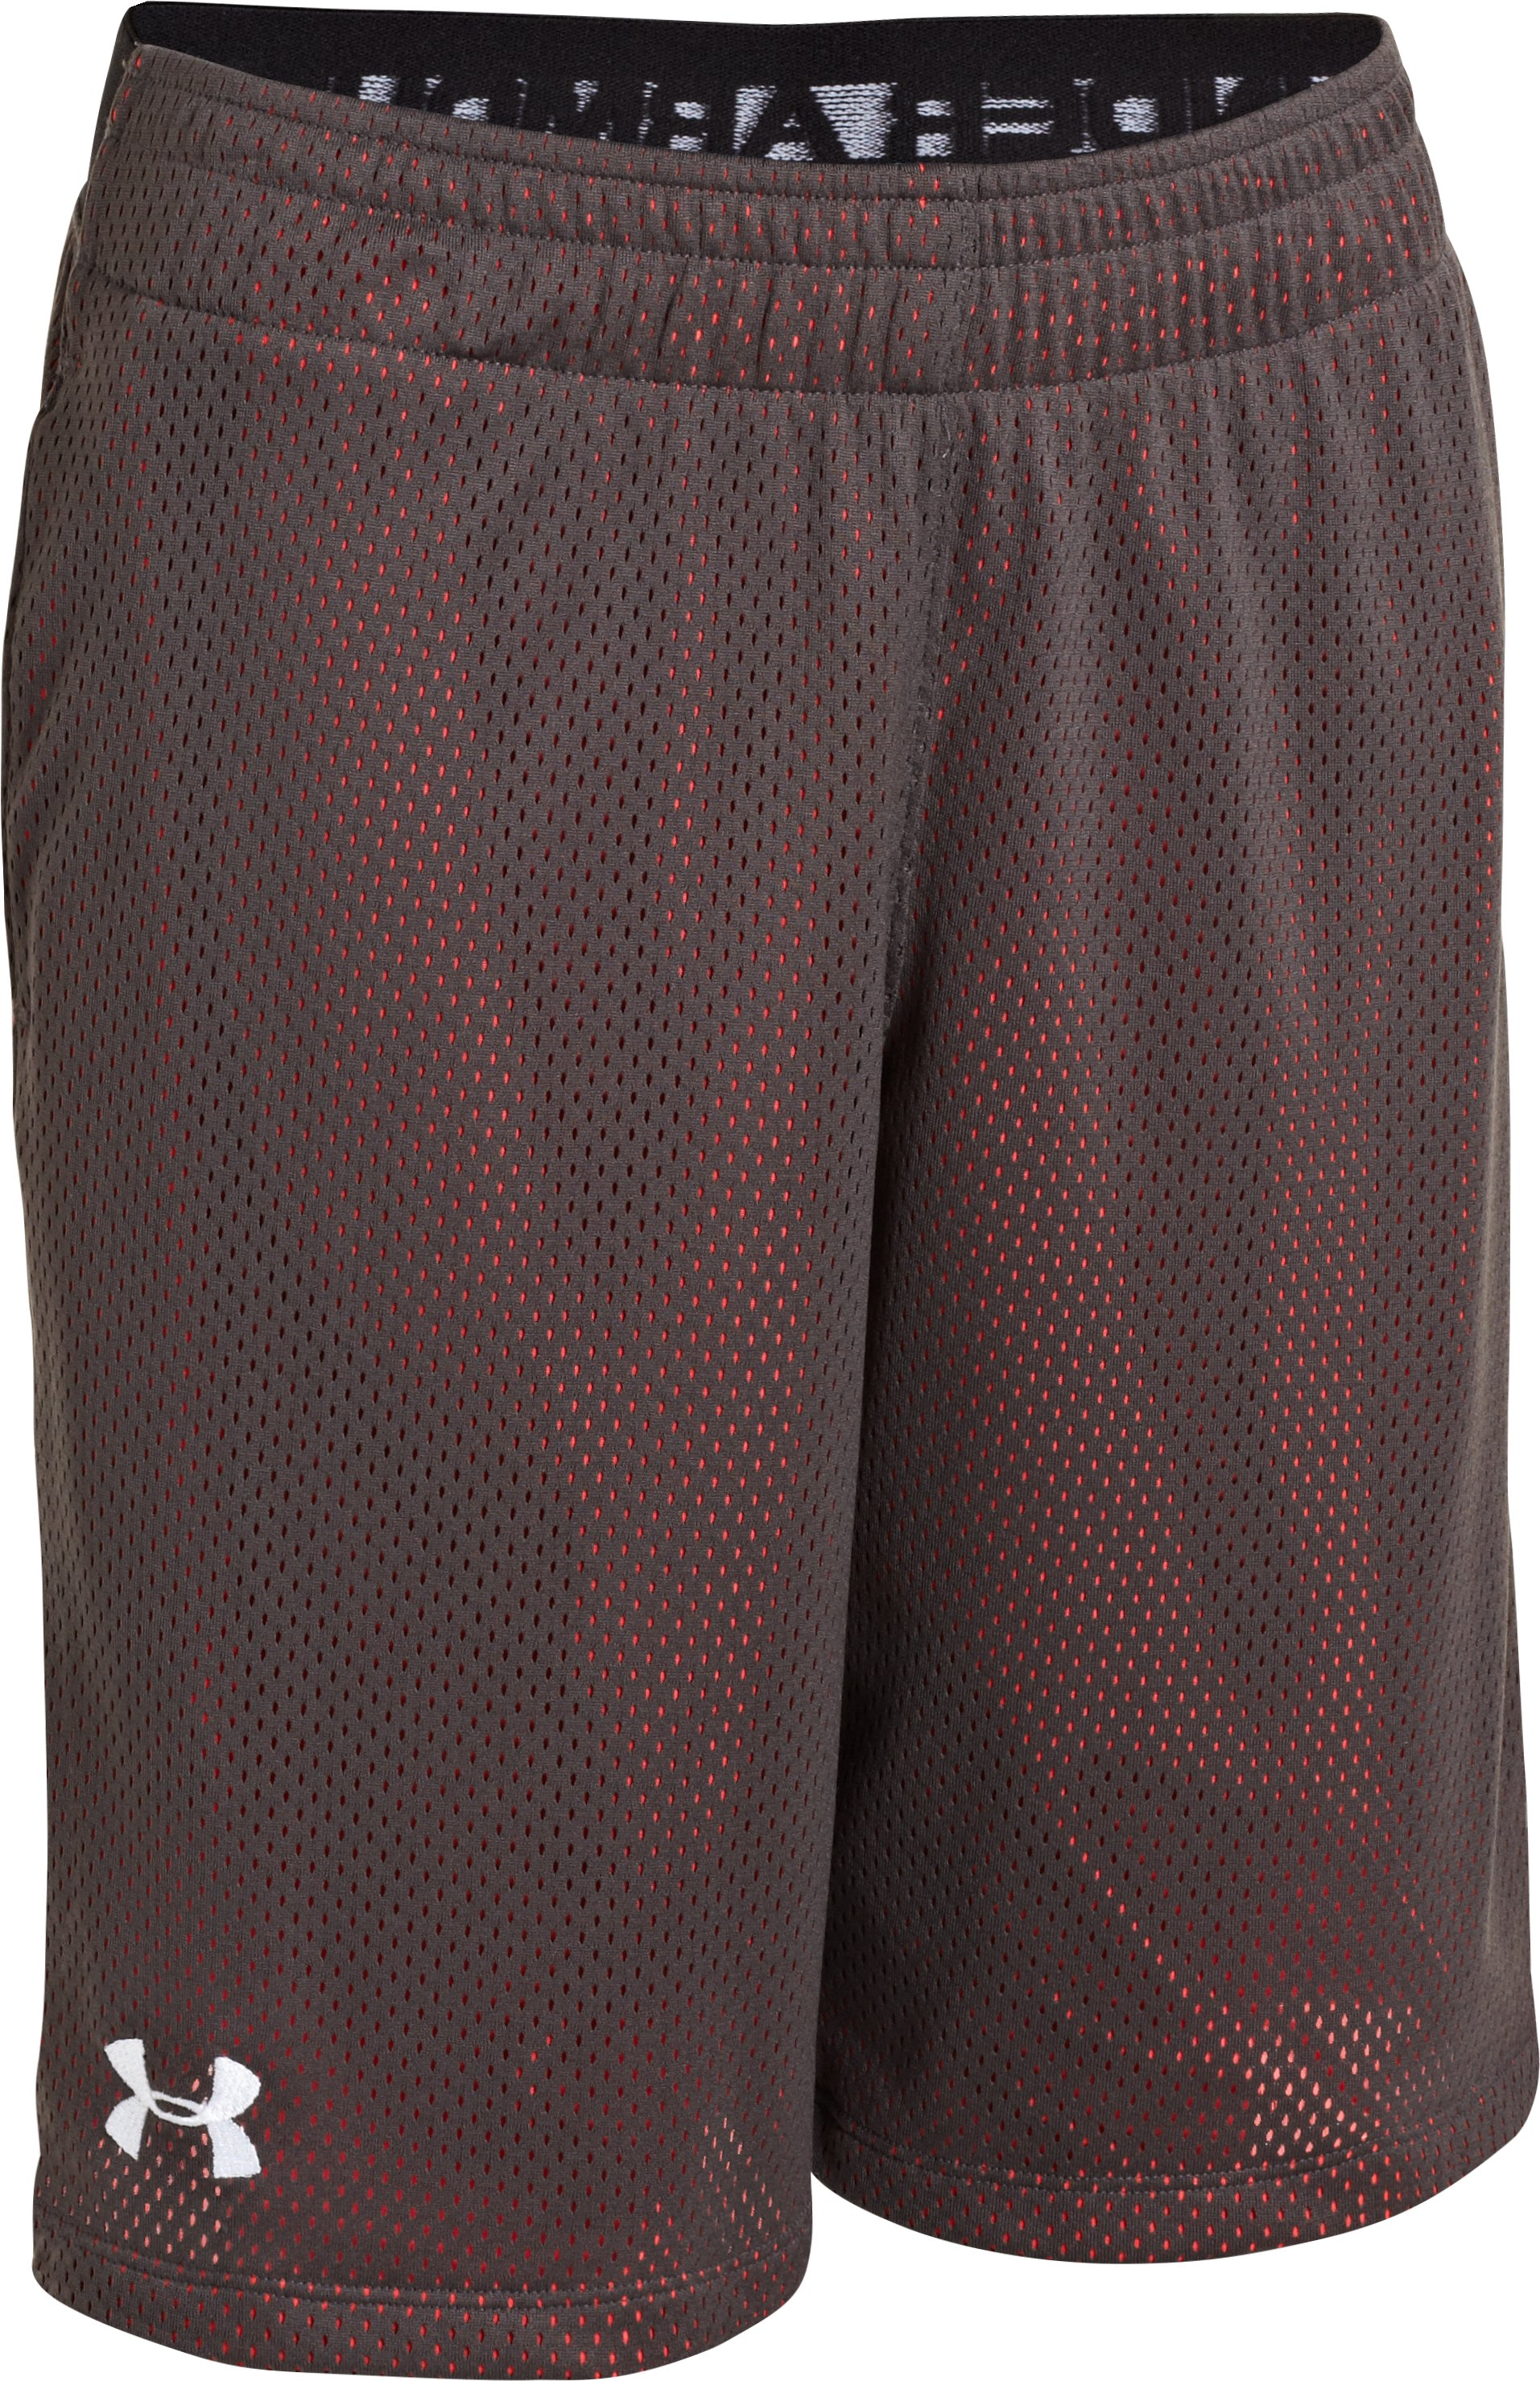 "Boys' UA Renegade 9"" Shorts, Charcoal"